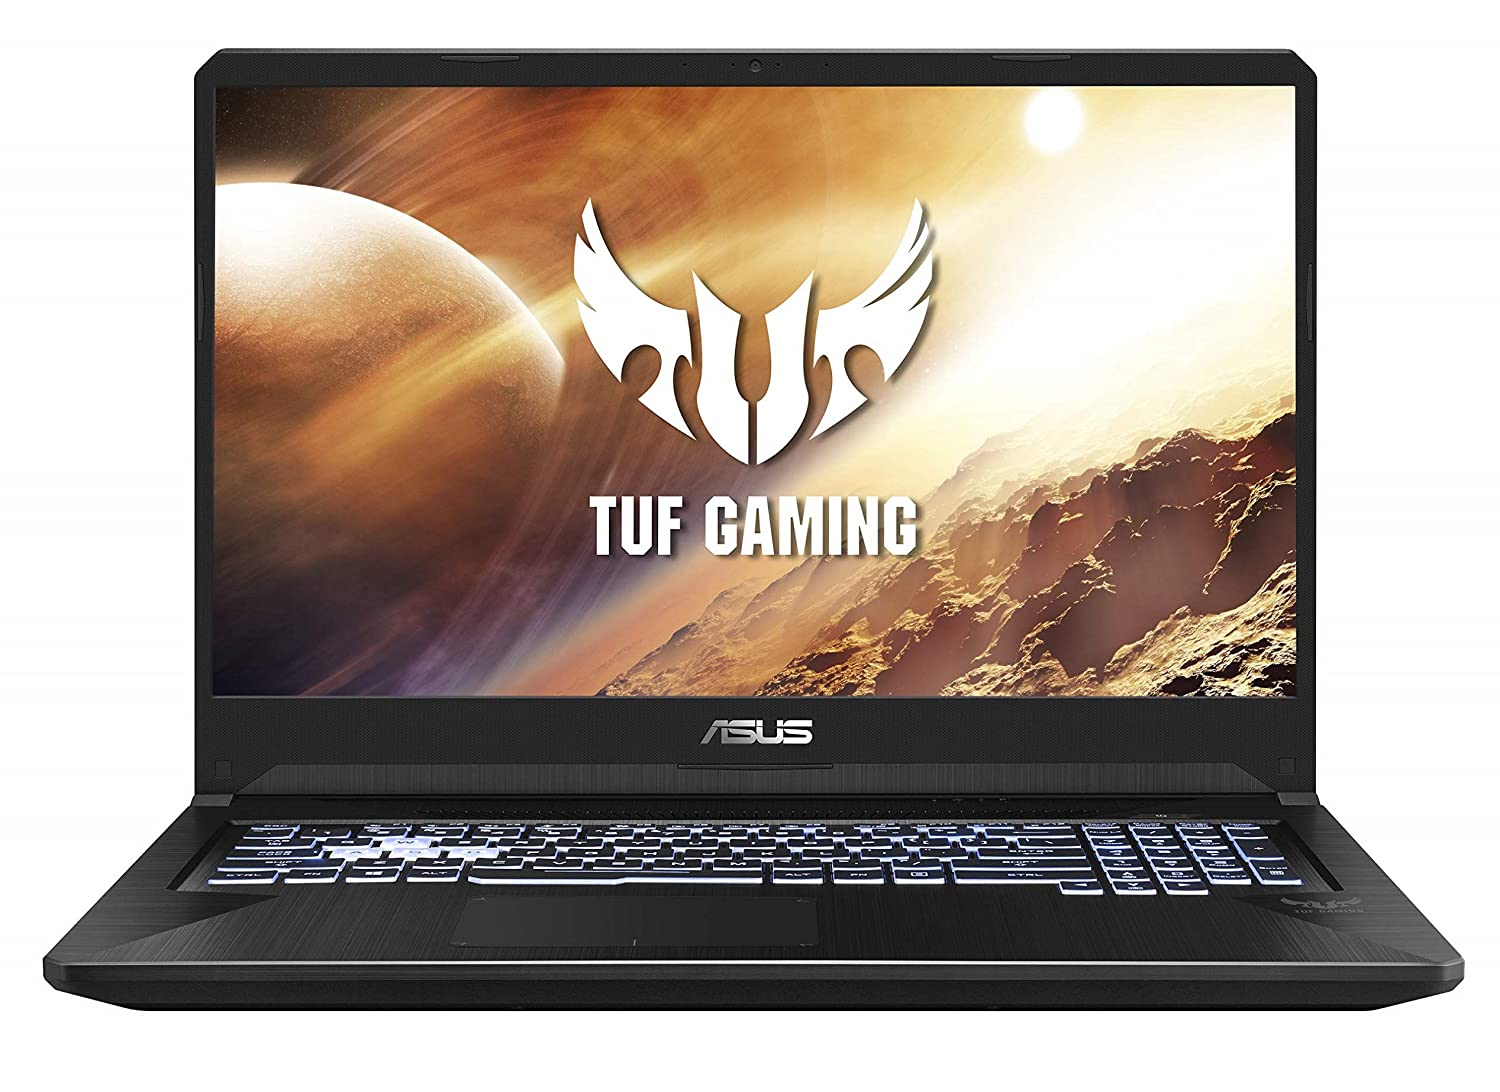 Buy Asus Tuf Gaming Fx705dt 17 3 Fhd Laptop Gtx 1650 4gb Graphics Ryzen 7 3750h 8gb Ram 512gb Pcie Ssd Windows 10 Stealth Black 2 70 Kg Fx705dt Au028t Online At Low Prices In India Amazon In